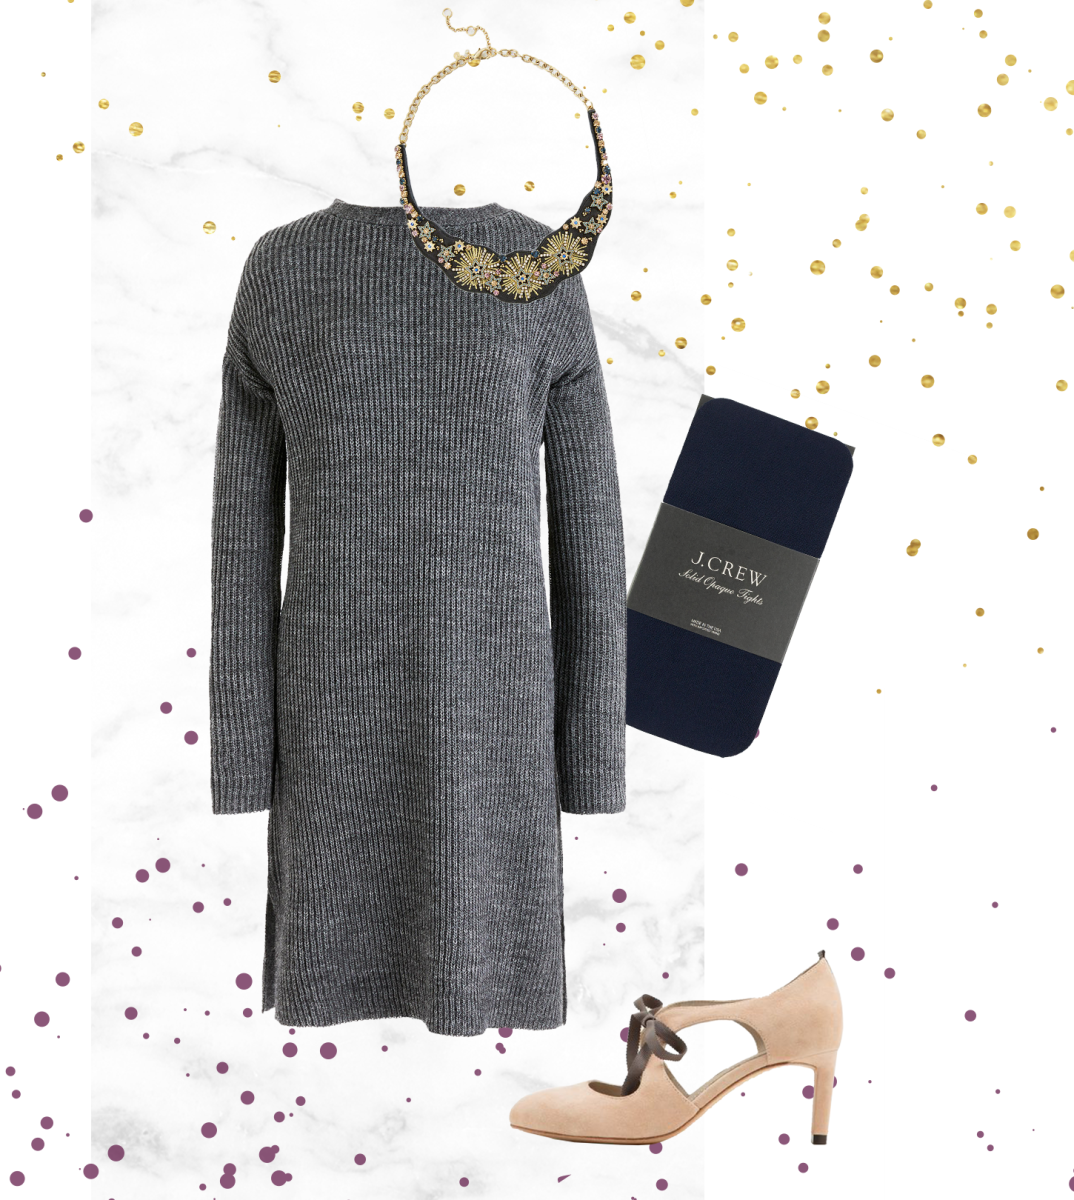 1. Dress, J.Crew, $77 / 2. Necklace, Ann Taylor, $90 / 3. Tights, J.Crew, $20 / 4. Heels, Boden, $170